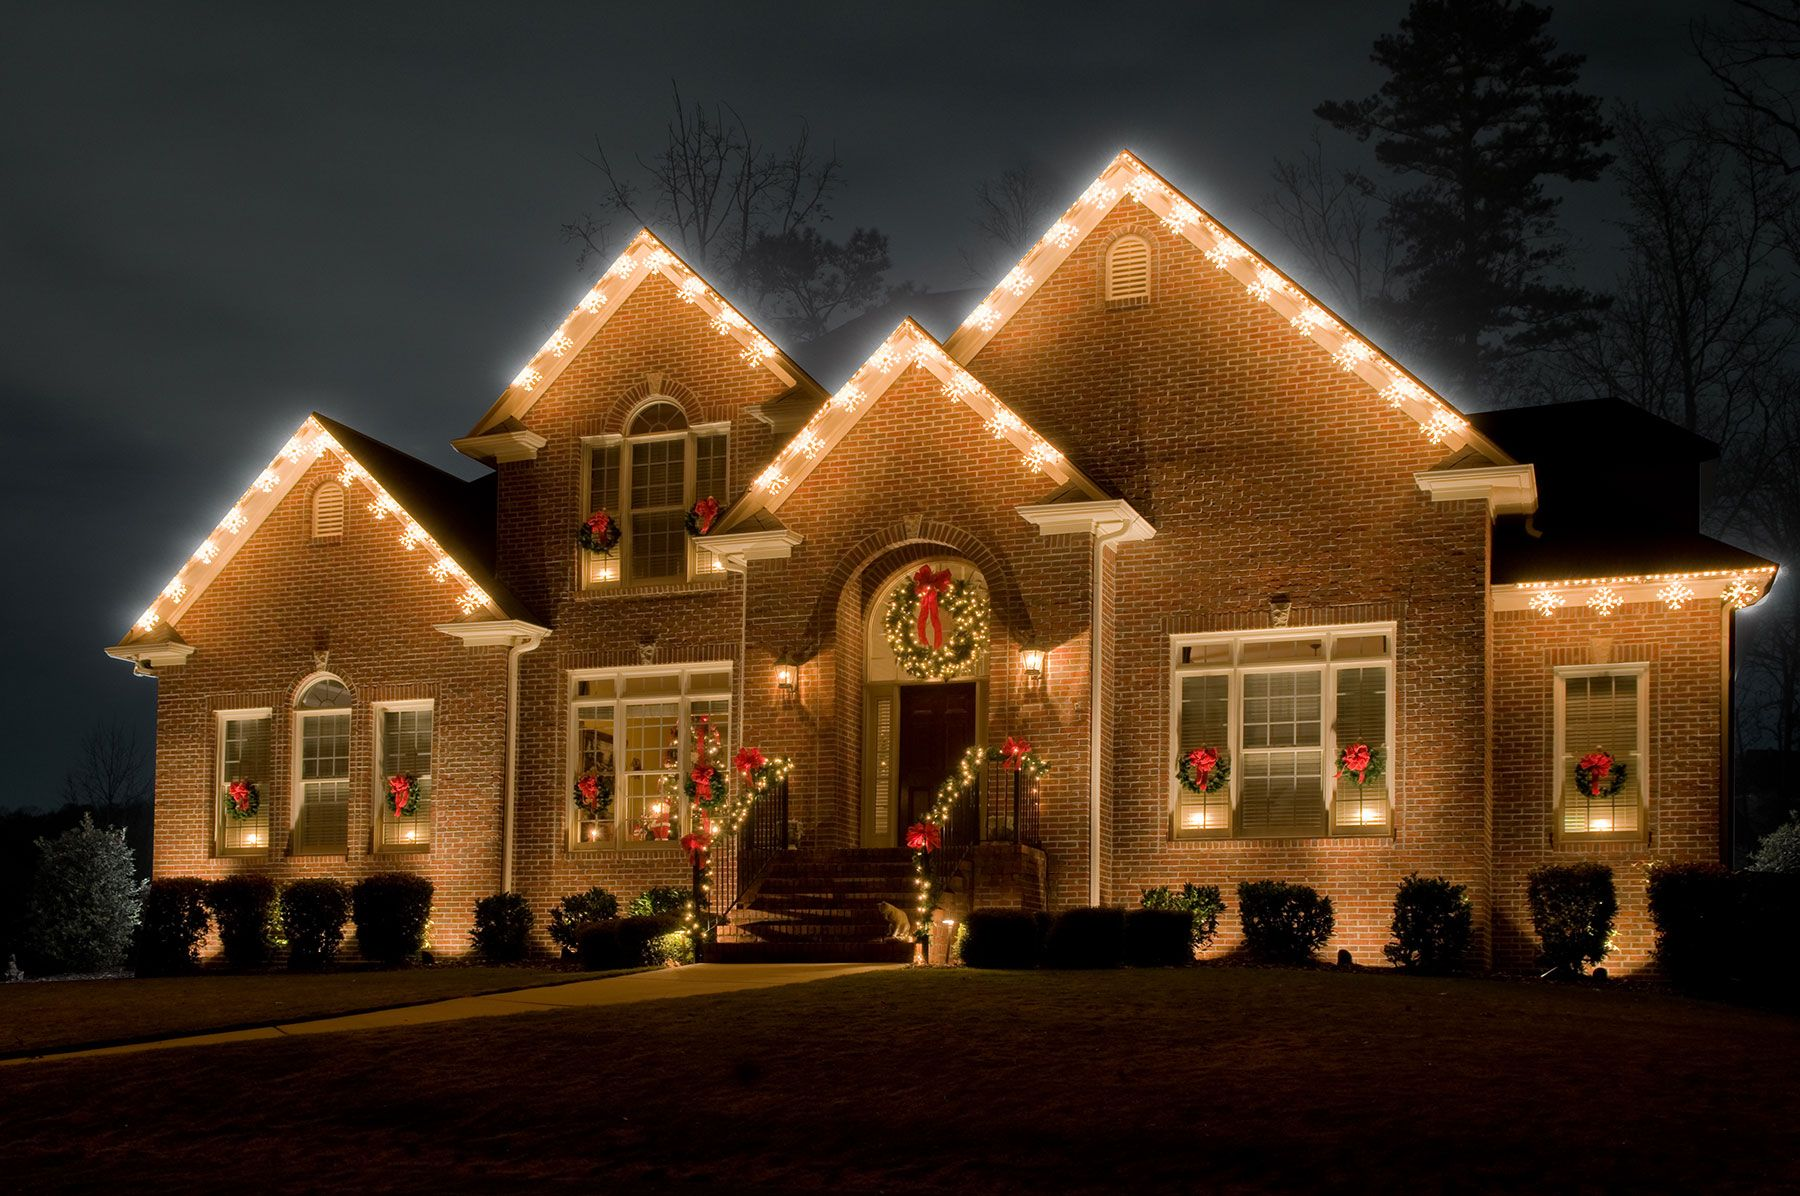 star like led snowflake light fixtures are just the perfect outdoor holiday lighting accent for - Christmas Outdoor Spotlights